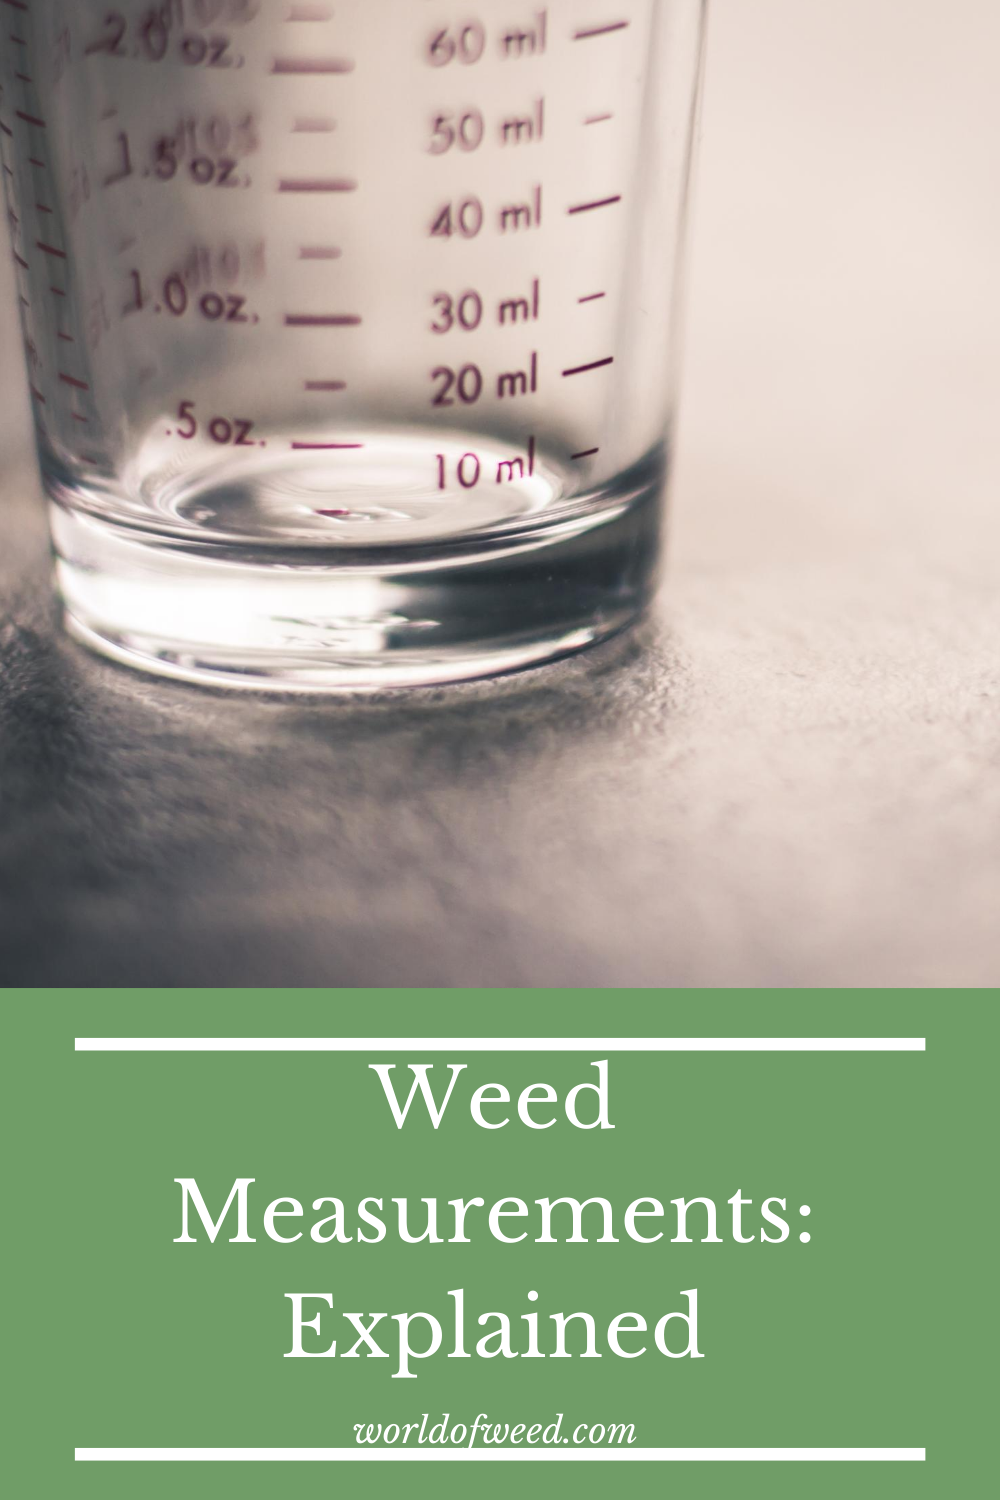 Weed Measurements: Explained